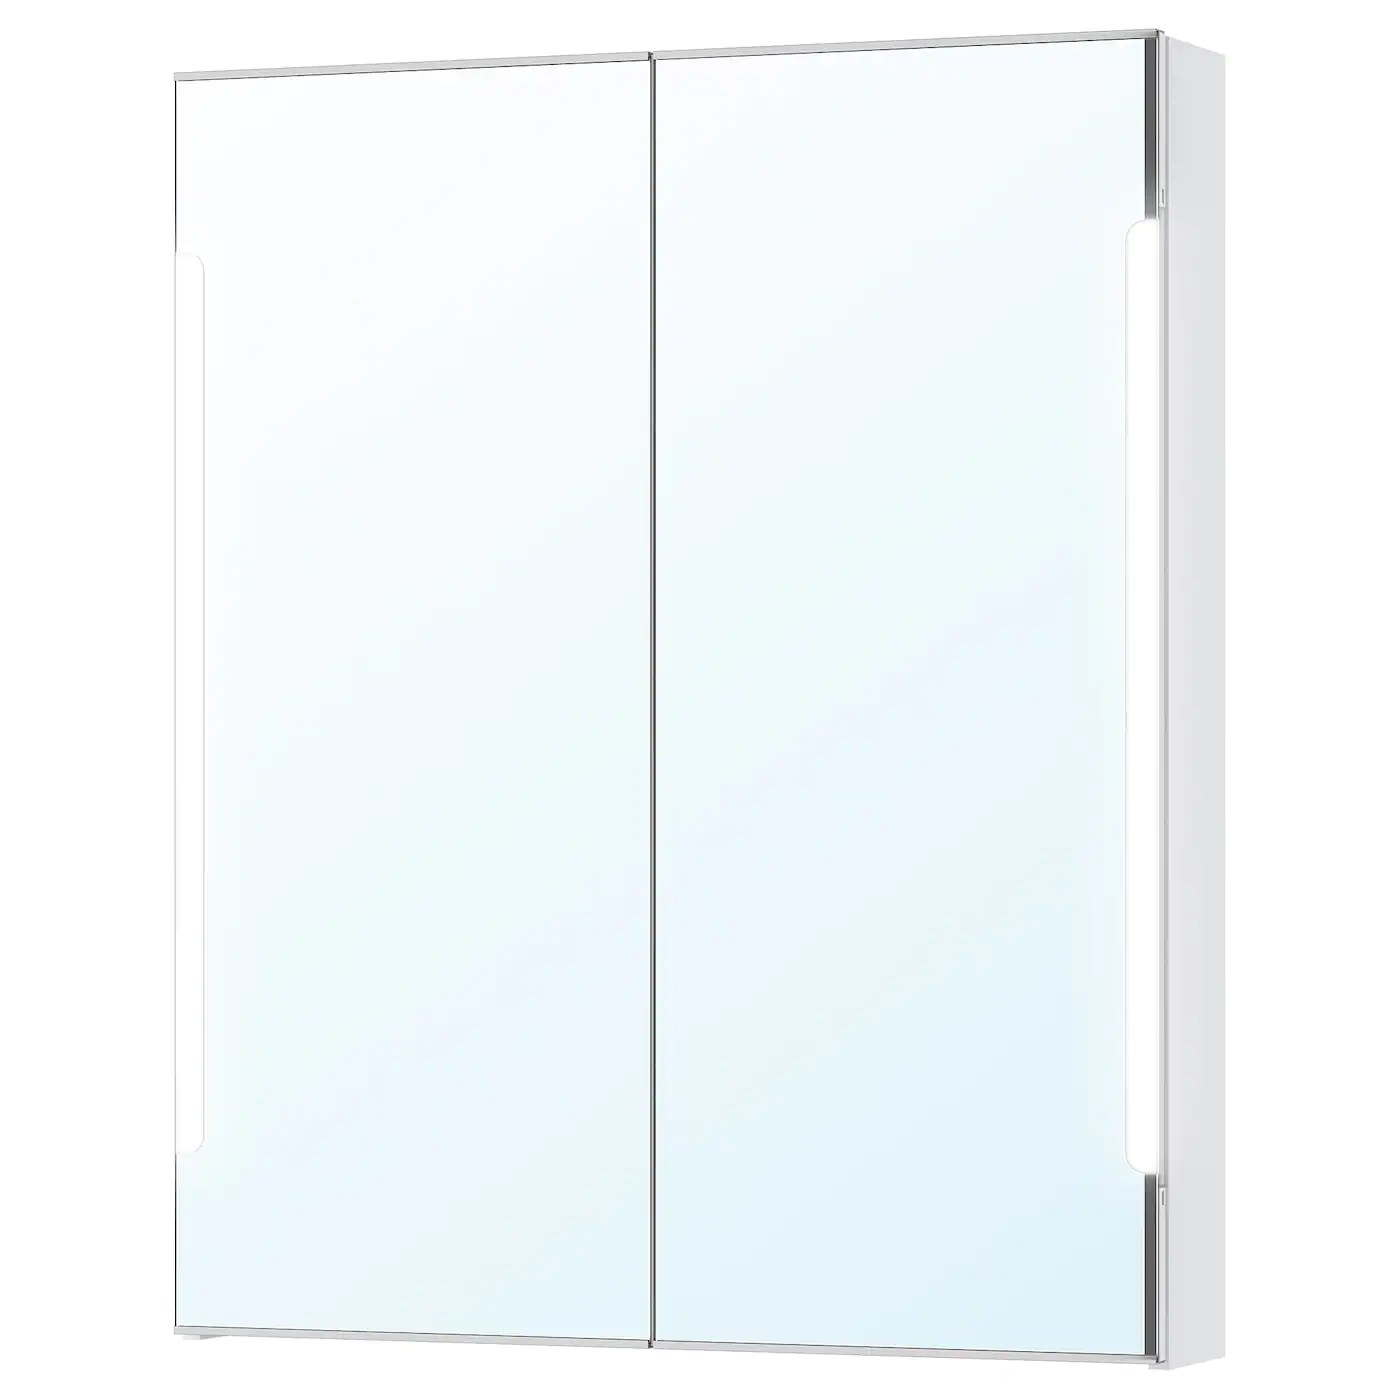 Spiegelschrank Ikea Storjorm White, Mirror Cab 2 Door/built-in Lighting, 80x14x96 Cm - Ikea